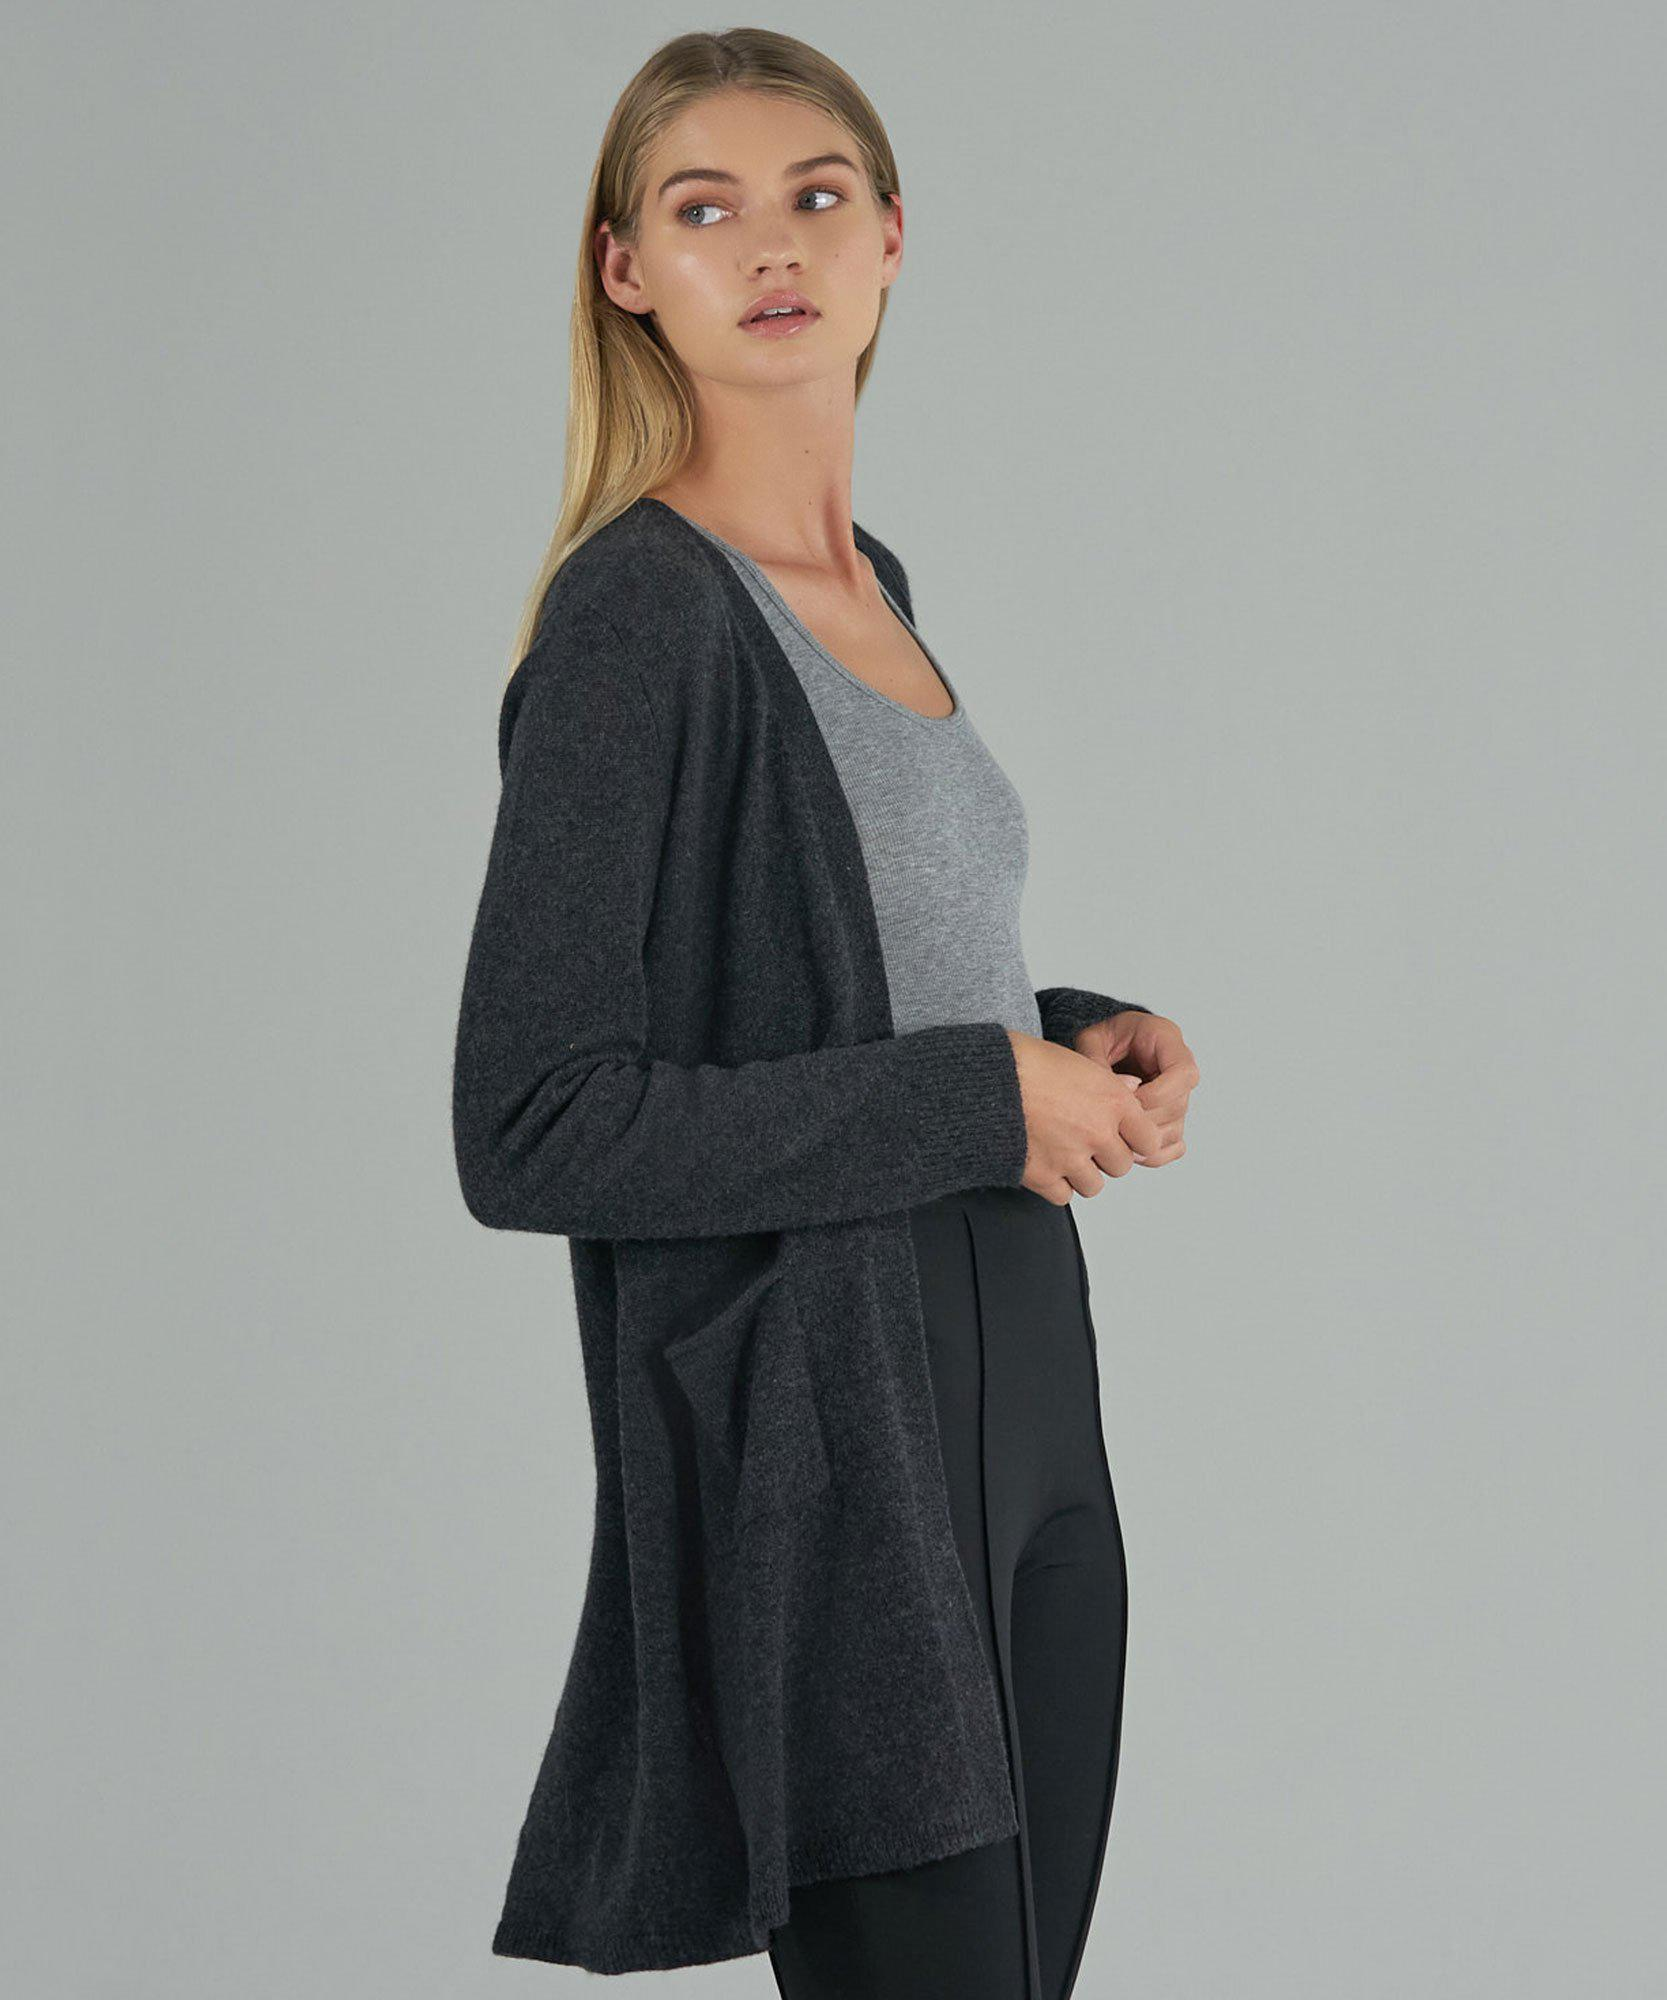 Cashmere Cardigan - Charcoal 1